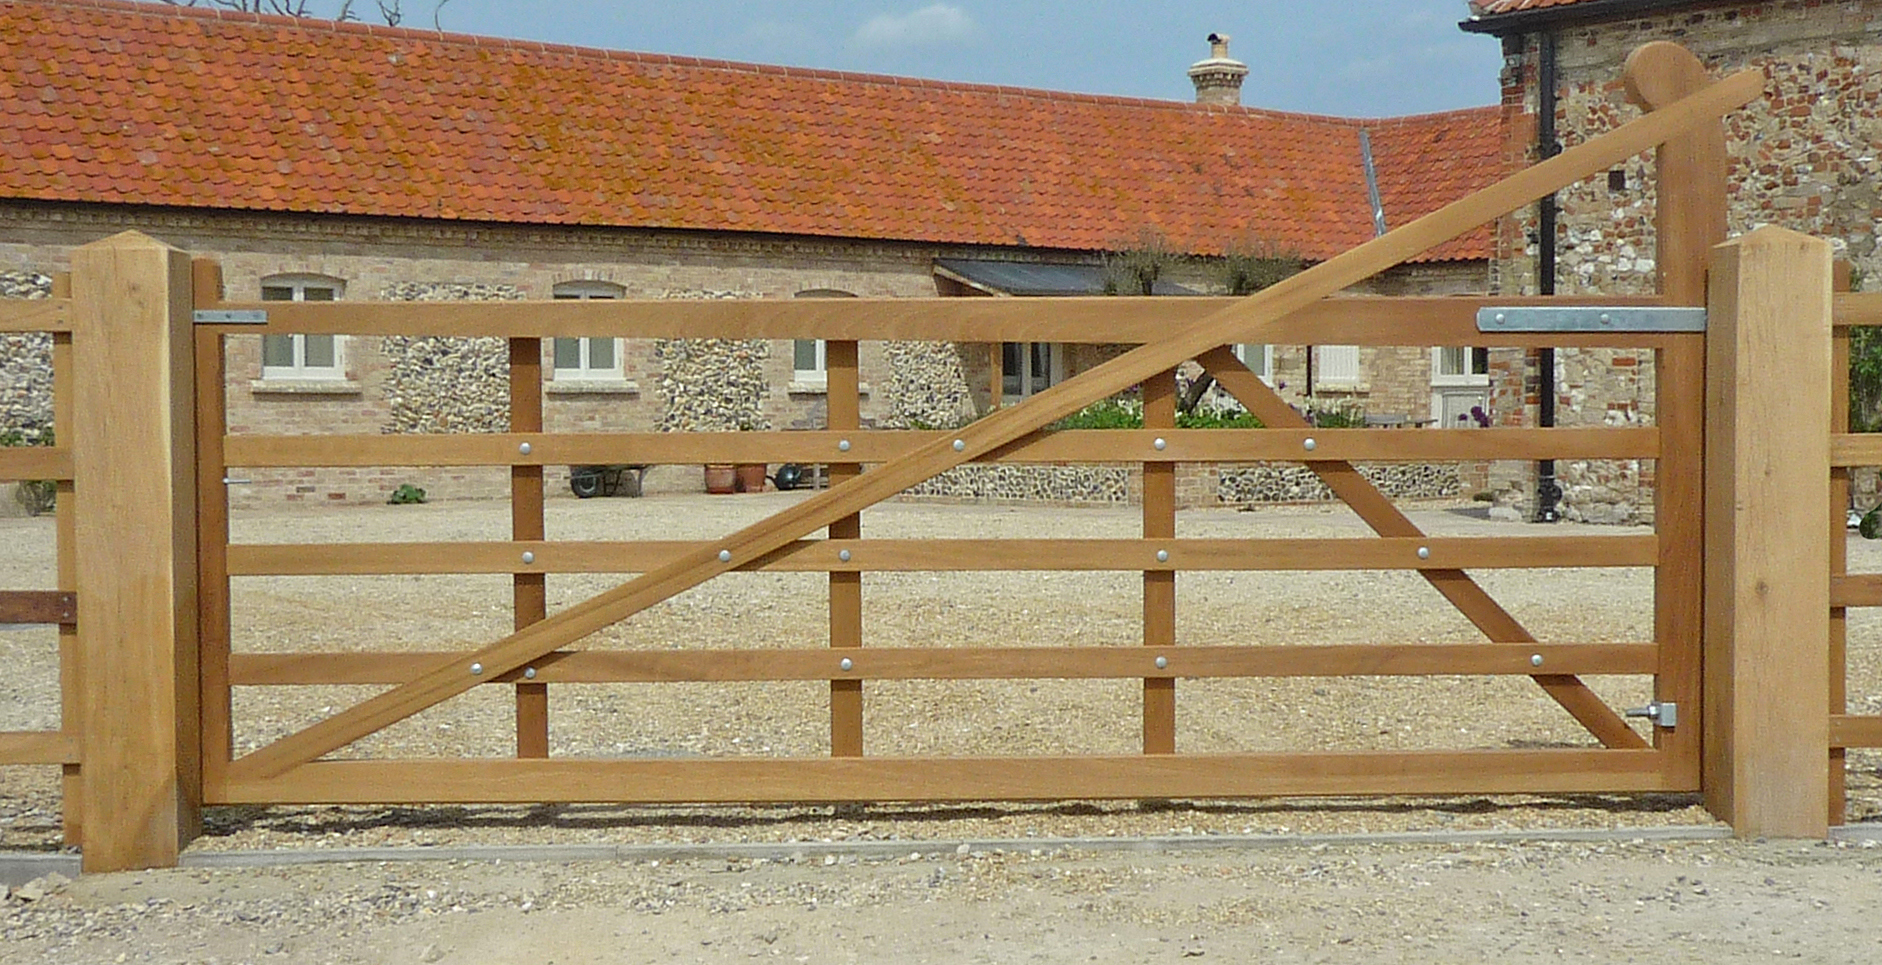 Butley gate in Iroko with a solid base rail